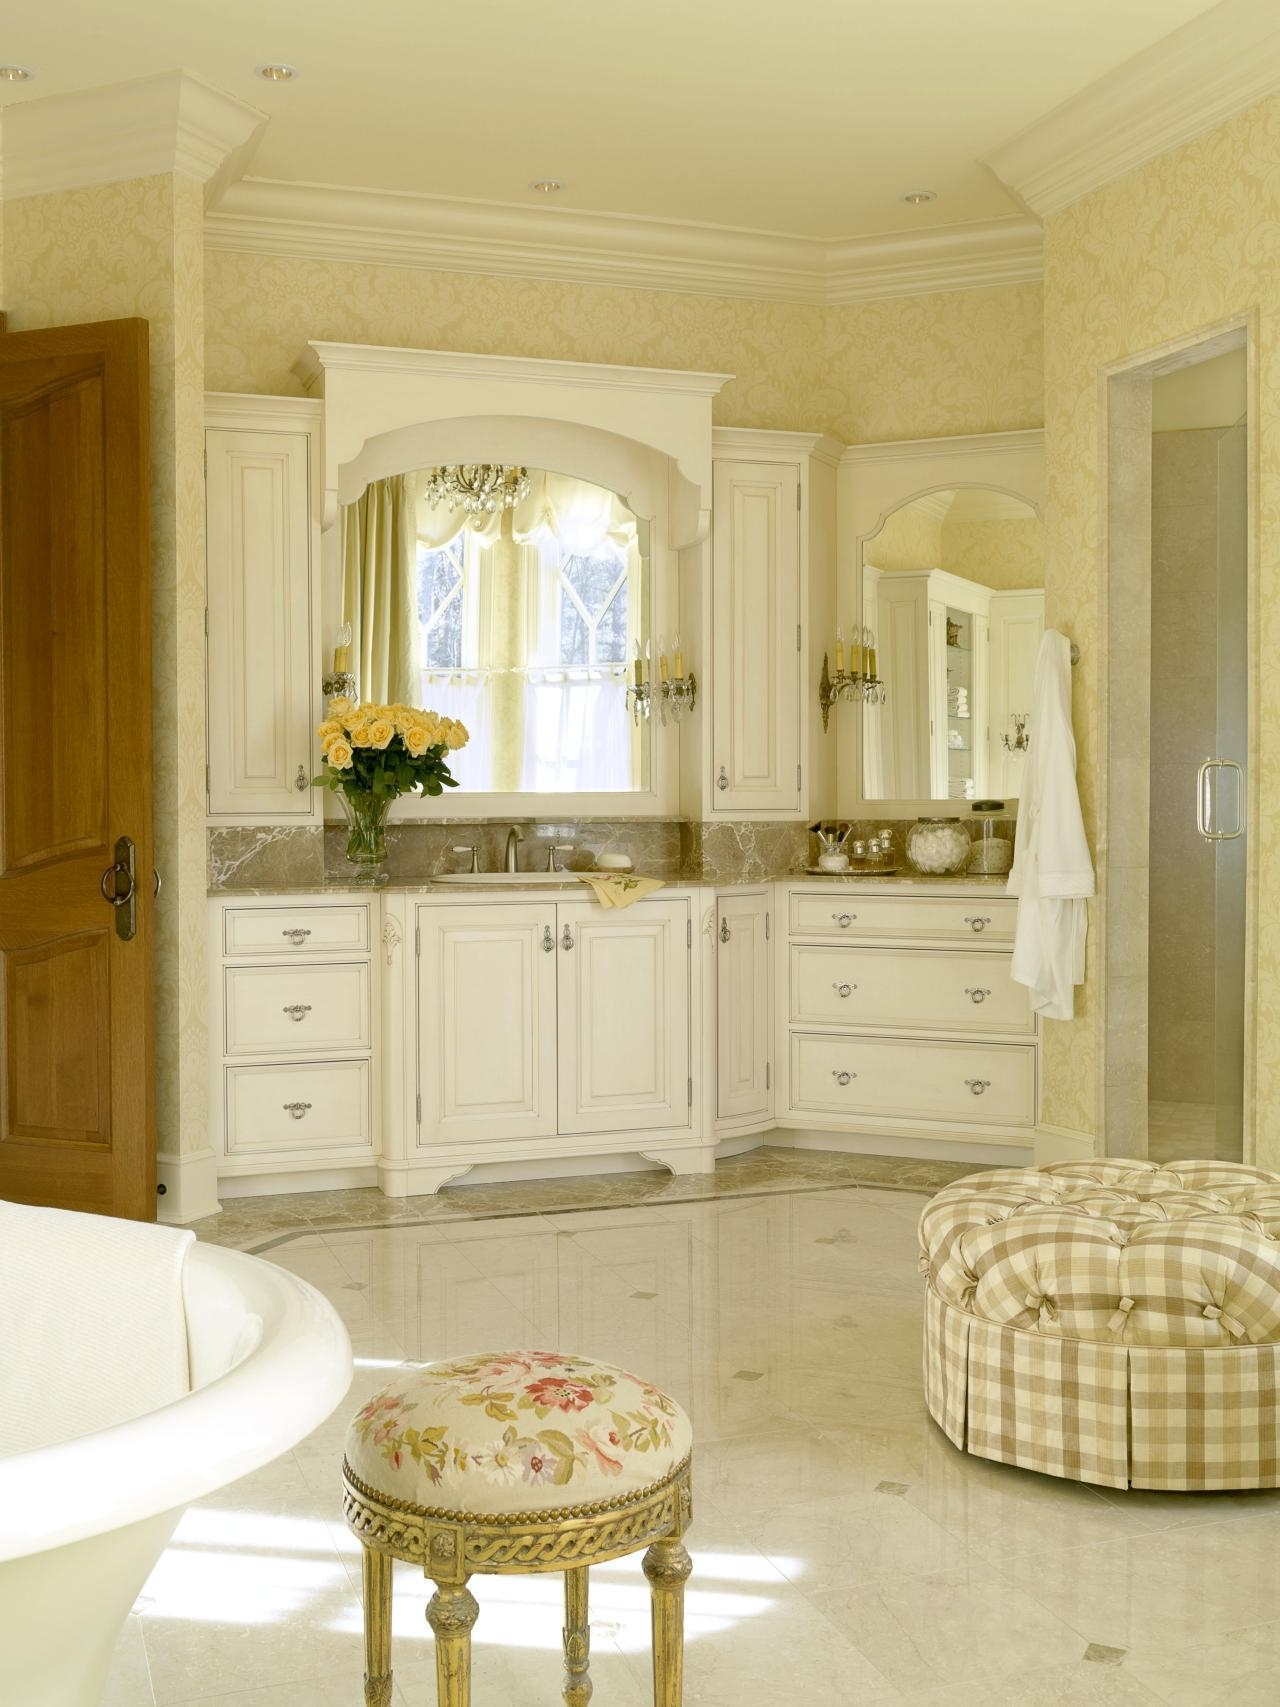 French Country Bathroom Design: Hgtv Pictures & Ideas | Hgtv Romantic Master Bathroom Designs Pictures